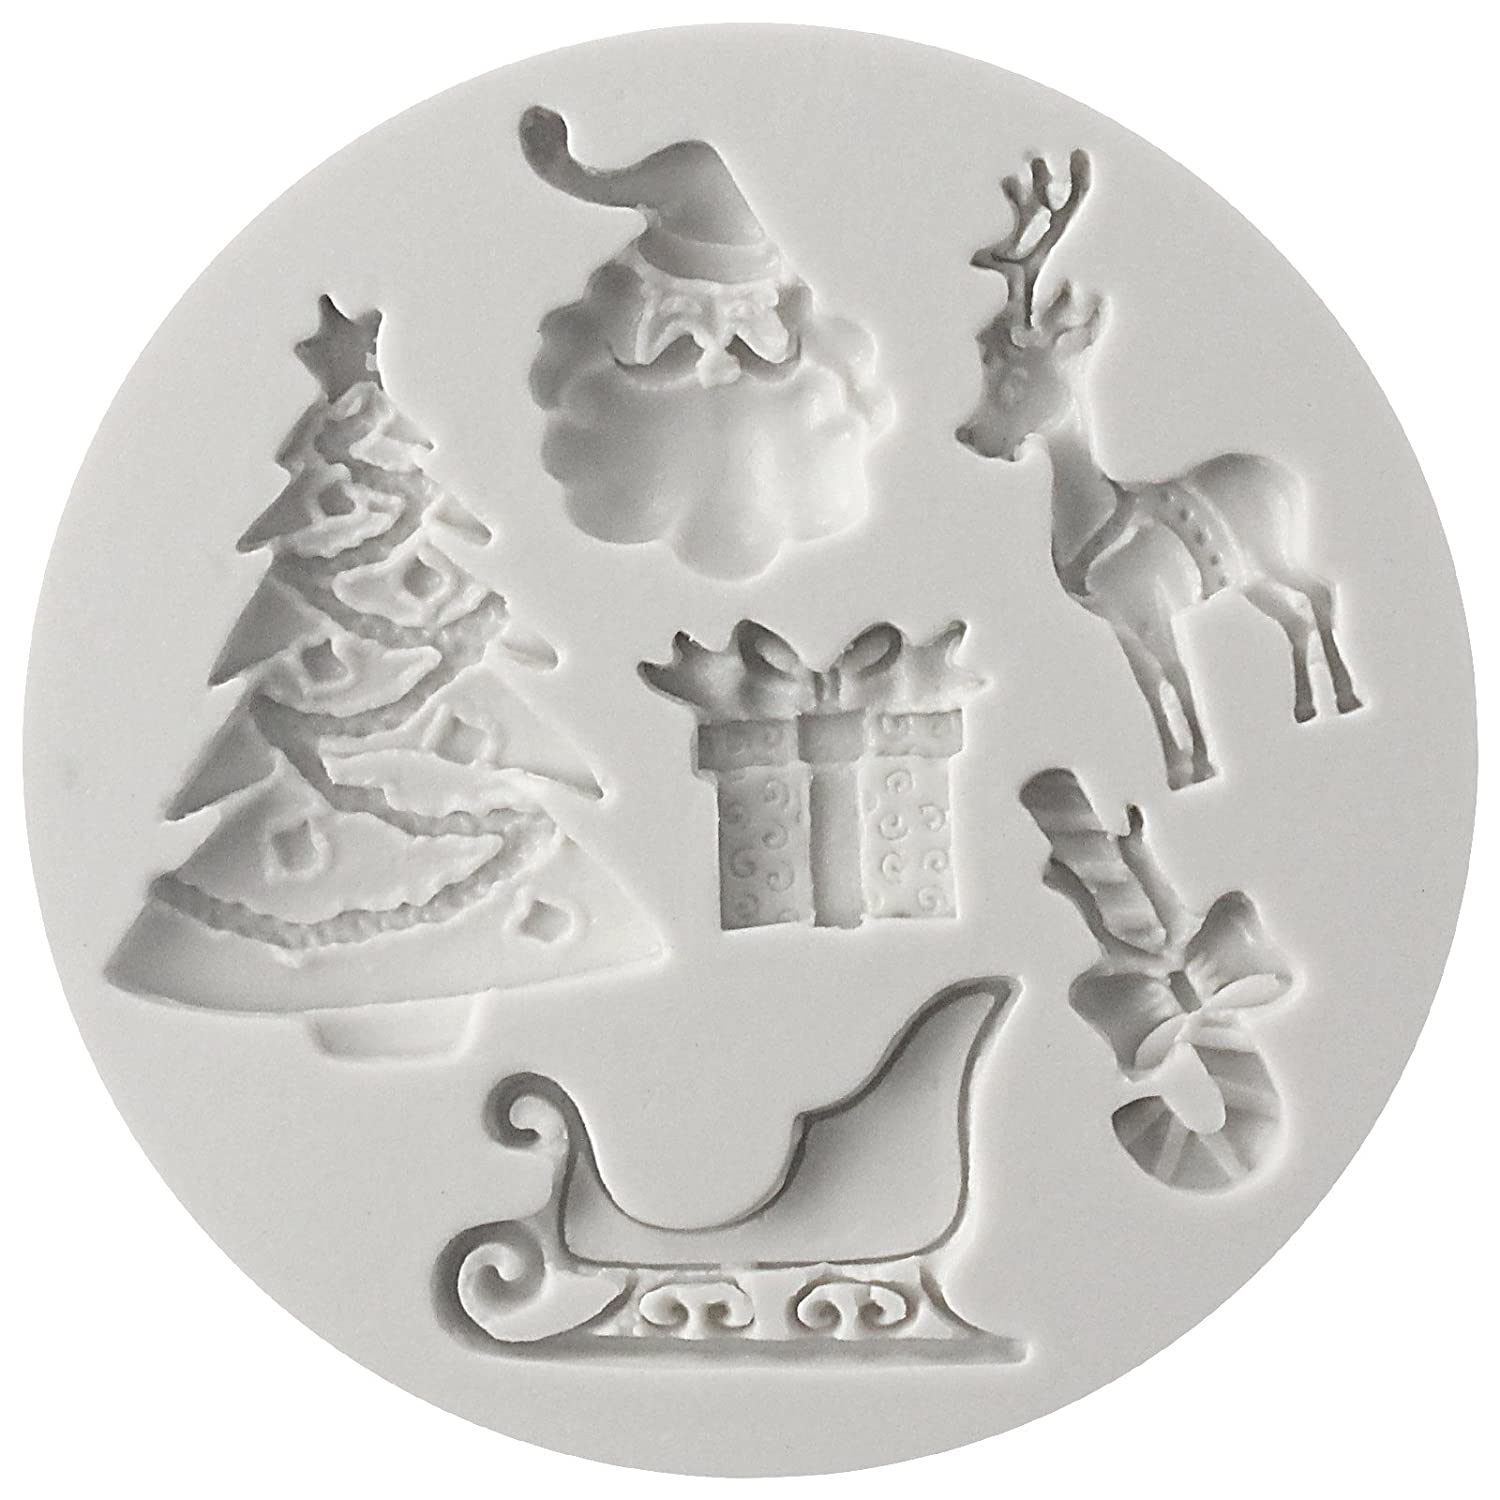 SANTAS ESSENTIALS SILICONE MOULD _ Chrismas Tree,Present,Reindeer,Candy Cane,Santa Claus, Food Grade Icing lace Mould, non stick Sugar paste, Chocolate, Fondant, Butter, Resin, Cabochon, Polymer Clay, fimo, gum paste, PMC, Wax, Soap Mold 132